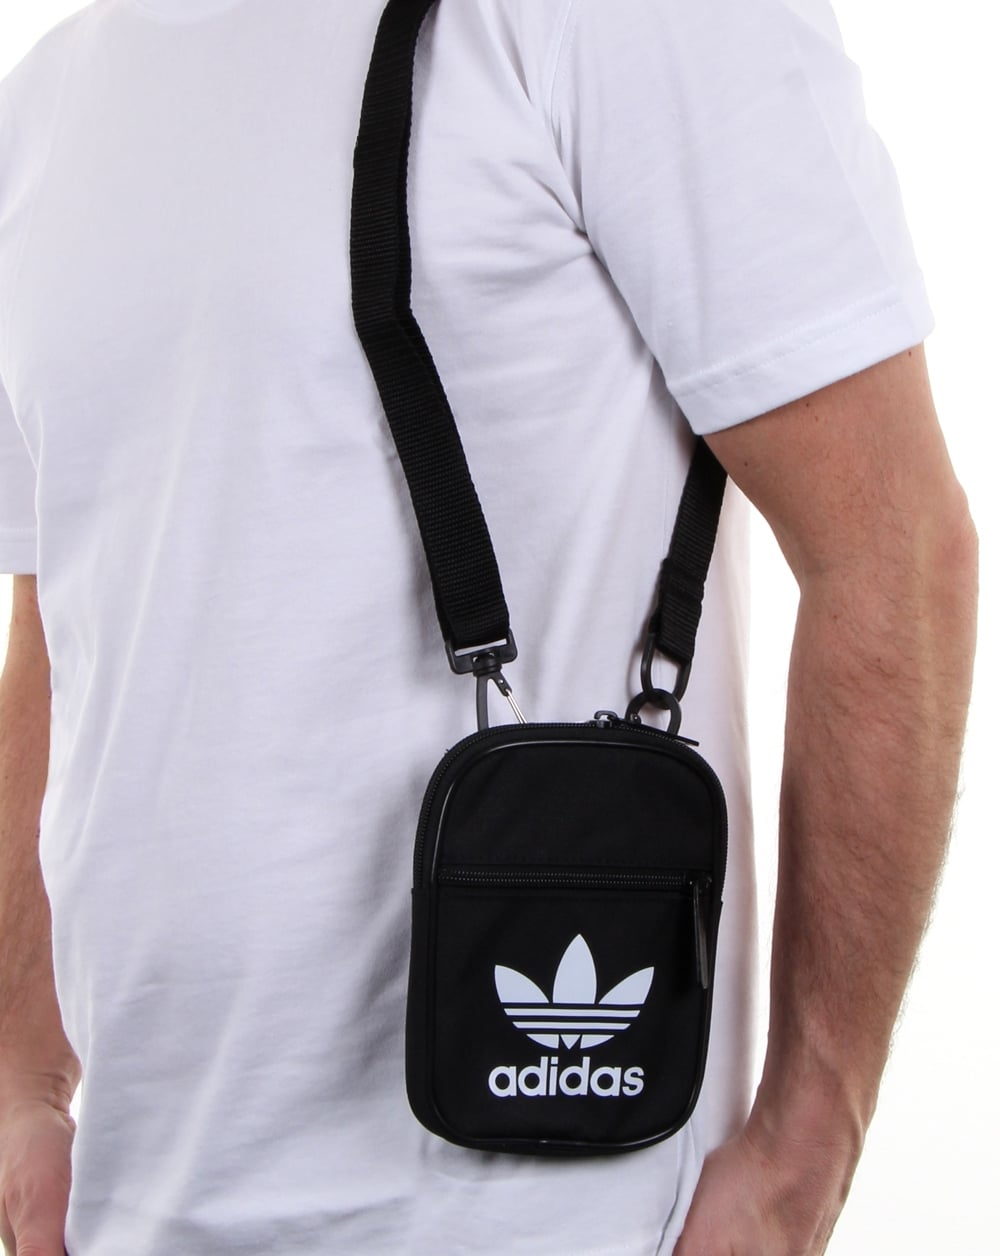 59bdda9306a Adidas Originals Trefoil Festival Bag Black, Men s, Shoulder